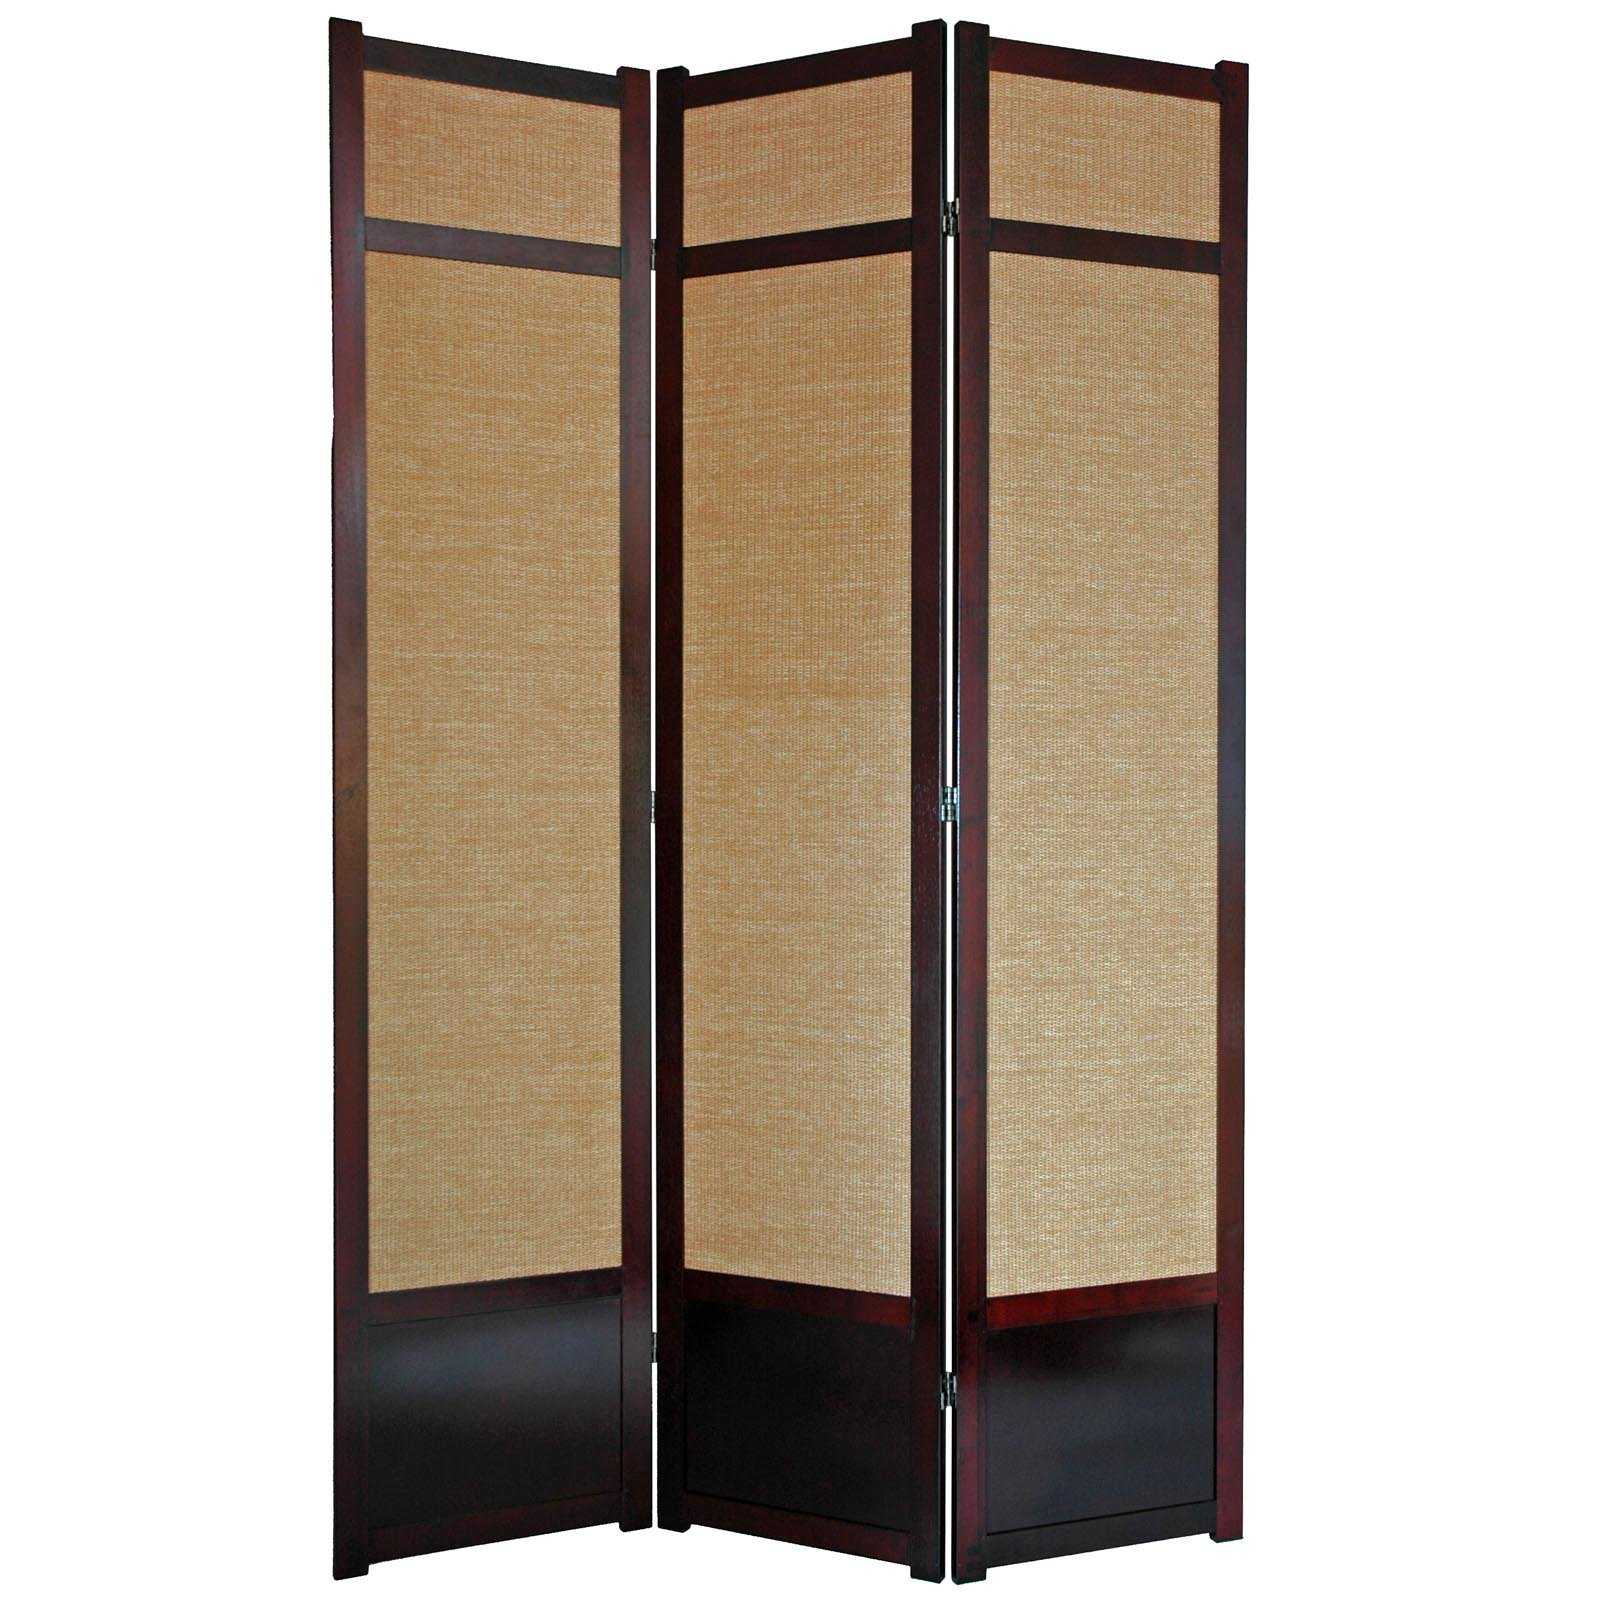 Oriental Furniture Jute Fiber Shoji Screen Room Divider 84 Inch